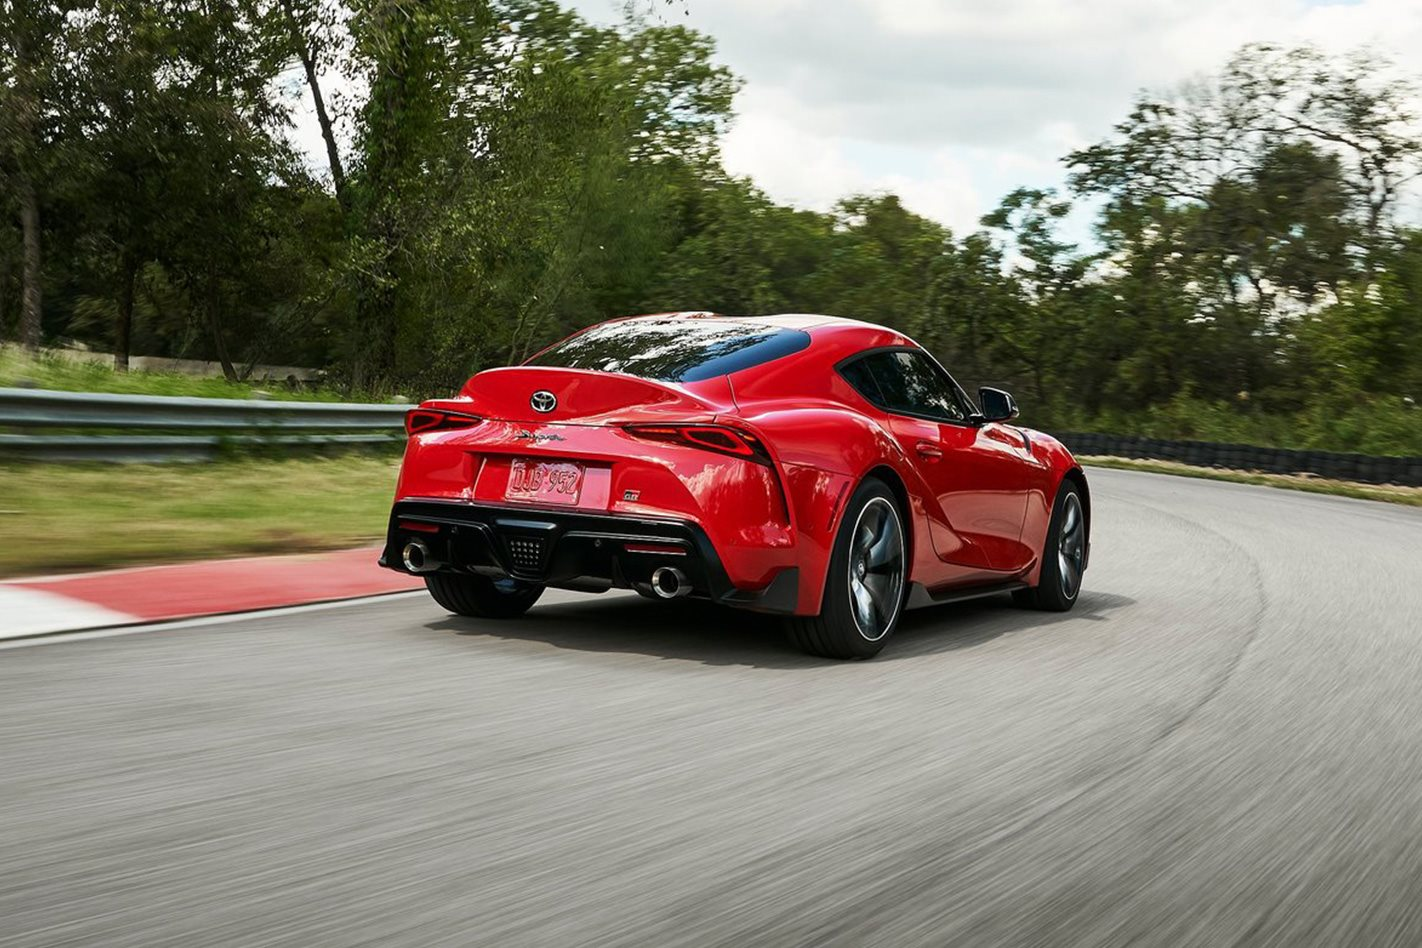 Why is Australia so far behind the curve on Toyota Supra pricing?